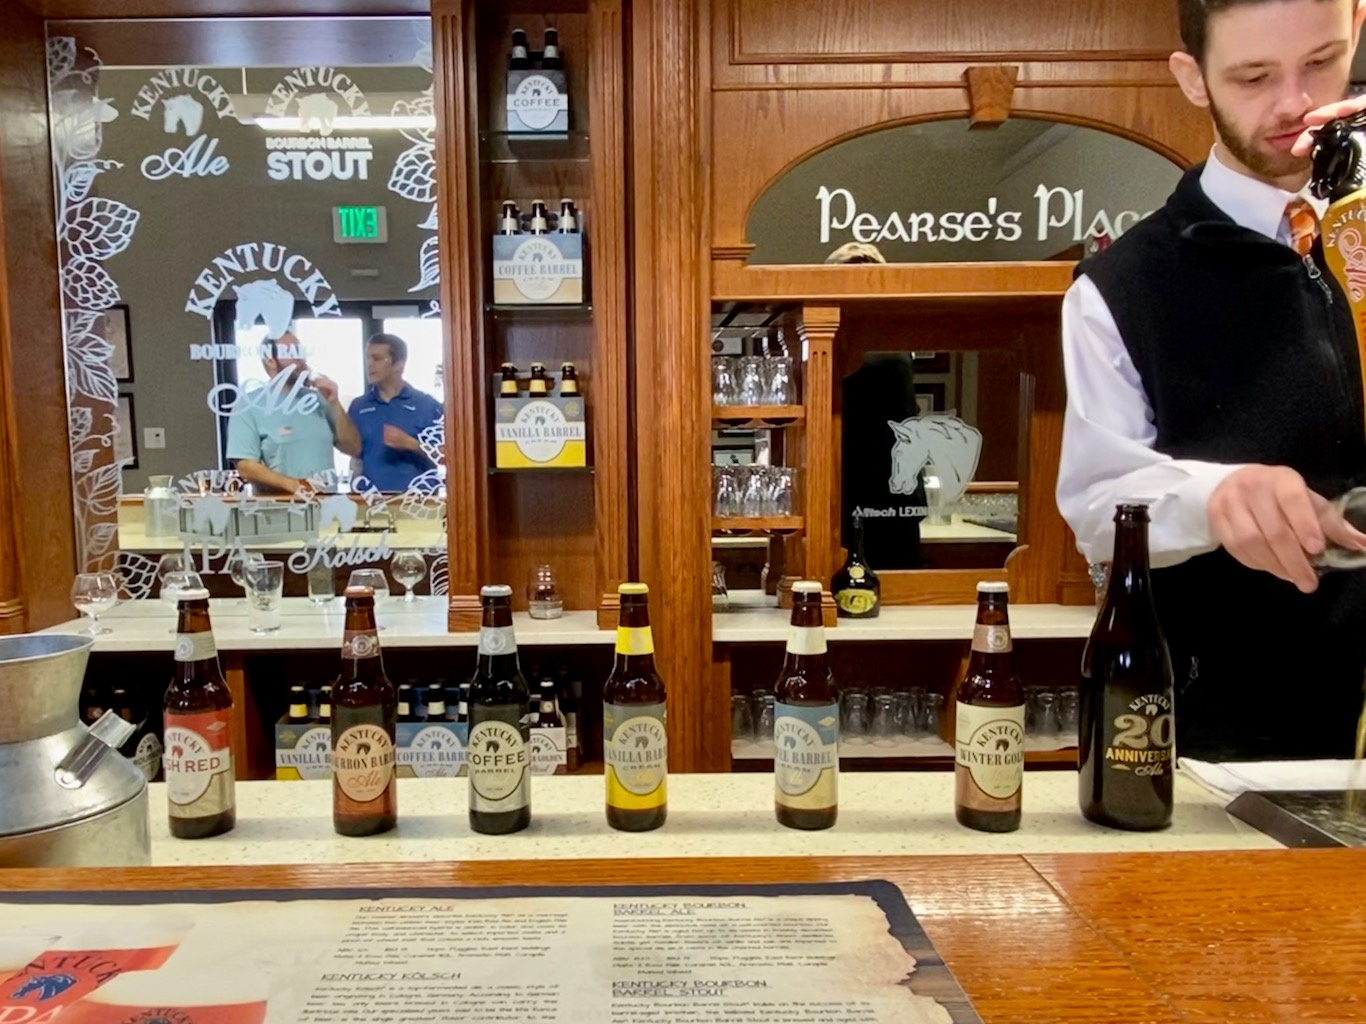 Pearse's Place - Beer Tasting Bar - Lexington Brewing & Distilling Co (Town Branch Distillery)